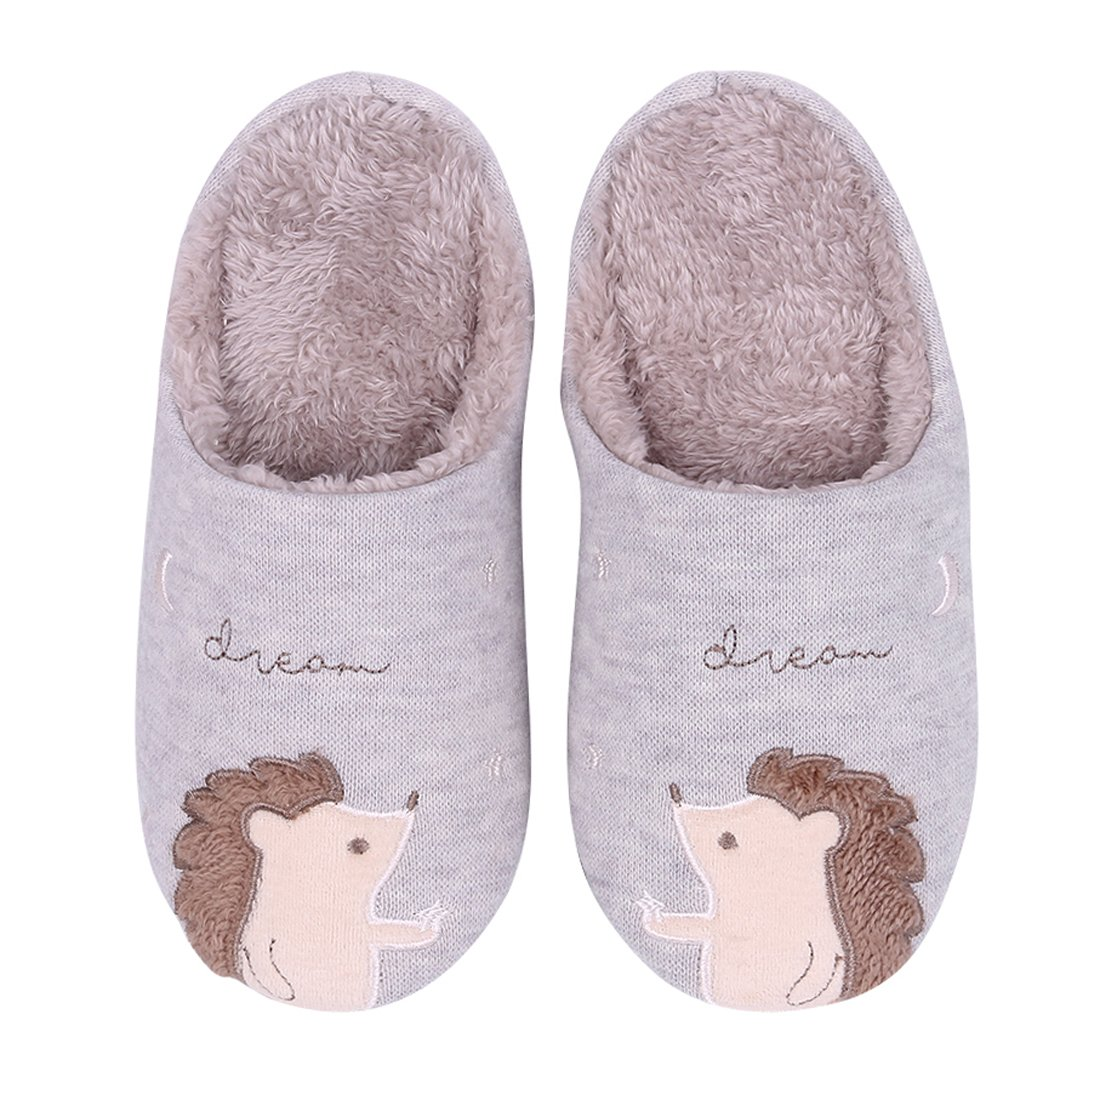 Cute Animal House Slippers Hedgehog Dog Family Indoor Slippers Waterproof Sole Fuzzy Bedroom Slippers for Kids 16G-M